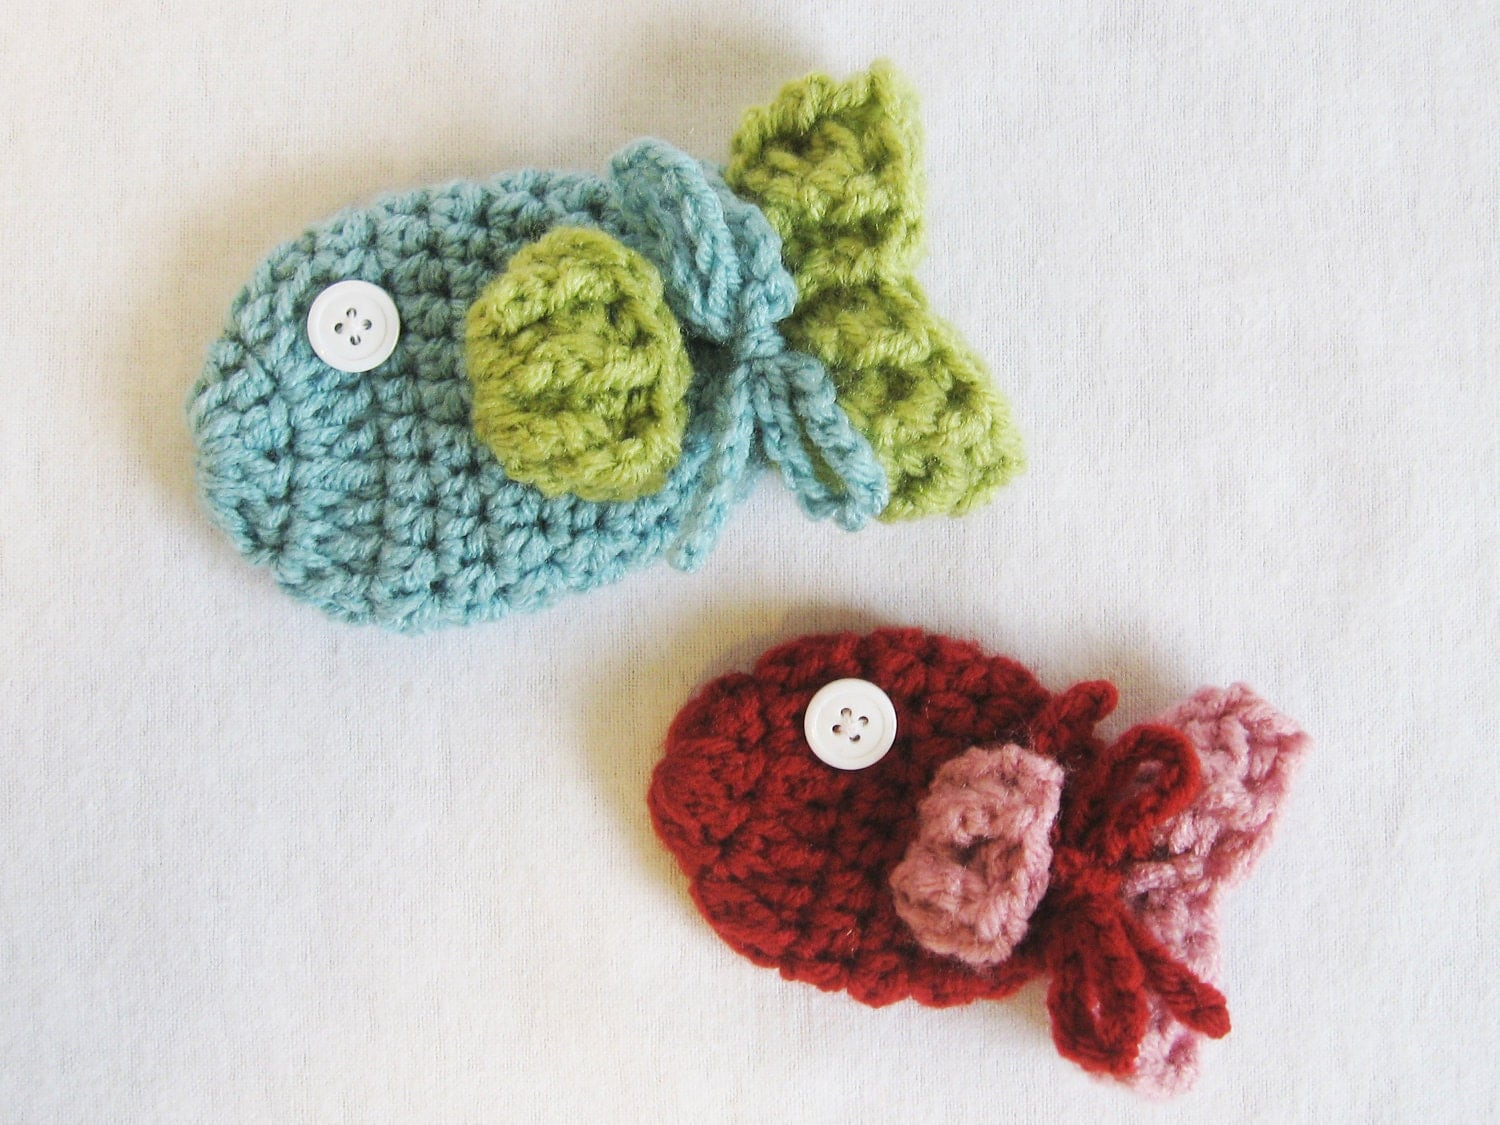 Crochet Pattern For Newborn Baby Sweater : Baby CROCHET PATTERN Baby Fish Mittens 3 sizes included from